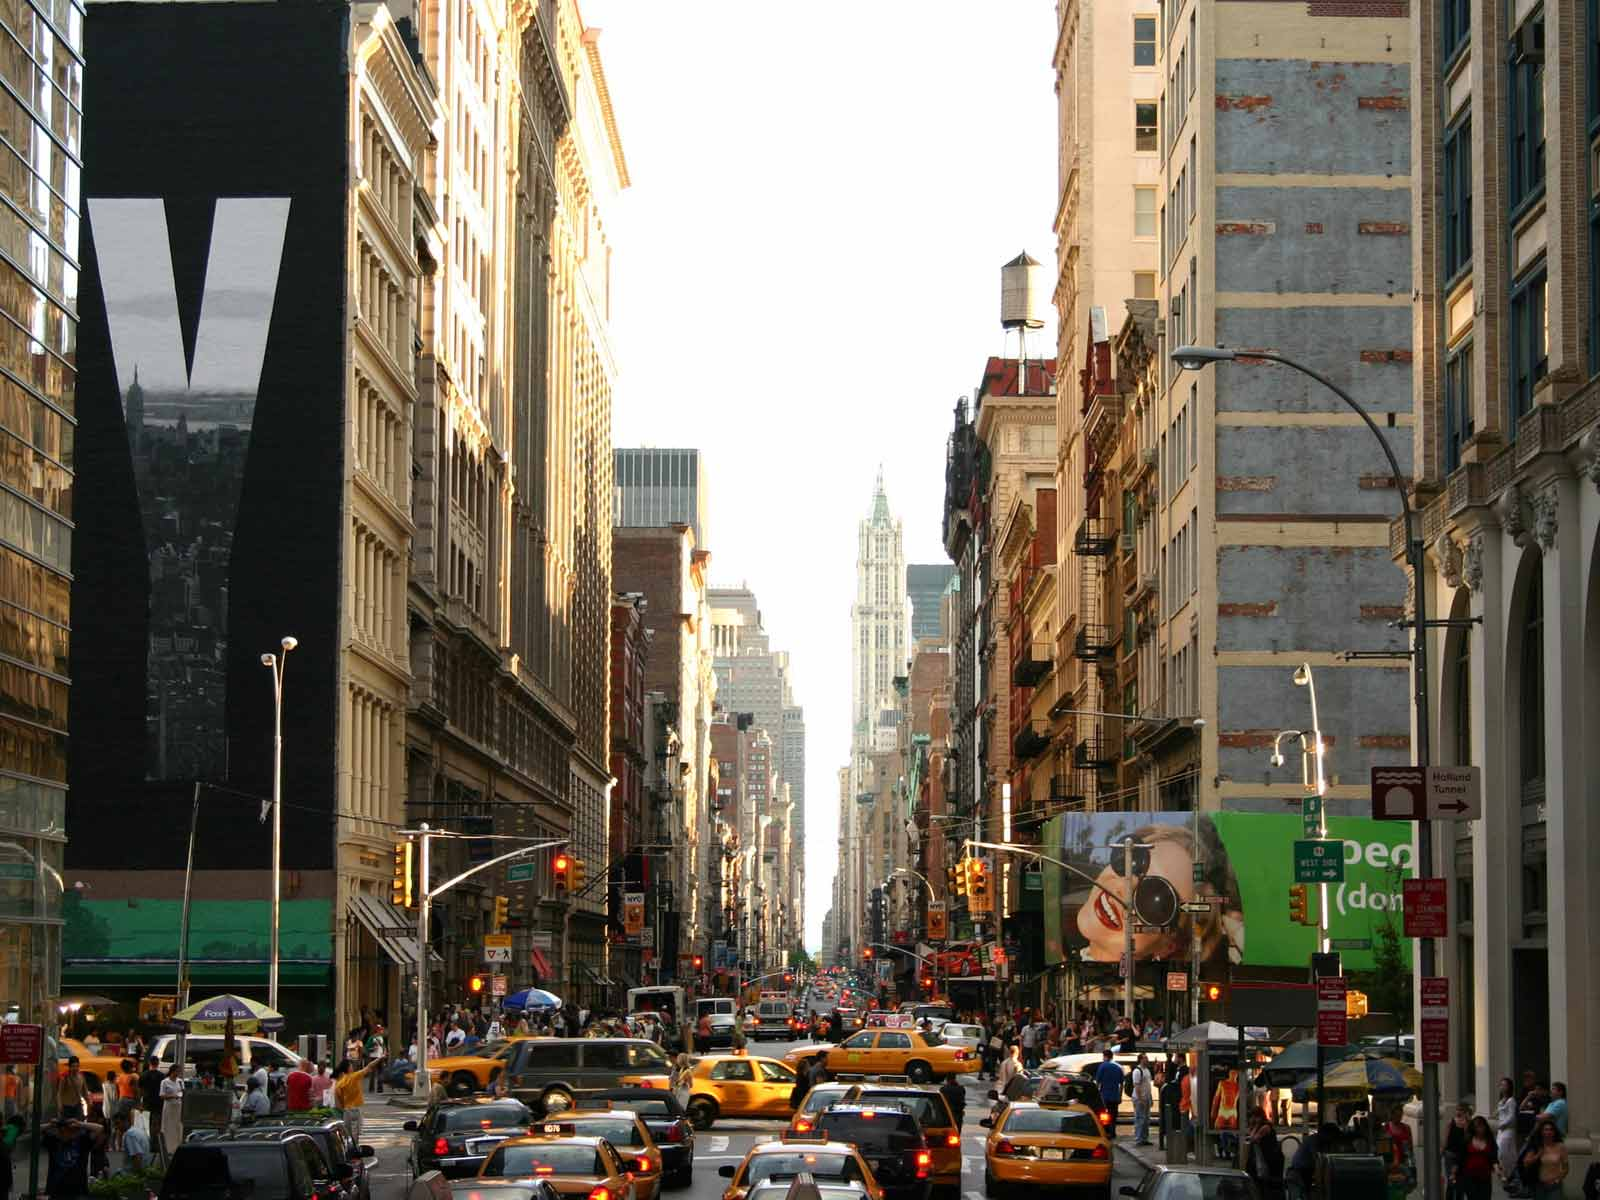 New York Streets Desktop Wallpaper High Quality WallpapersWallpaper 1600x1200